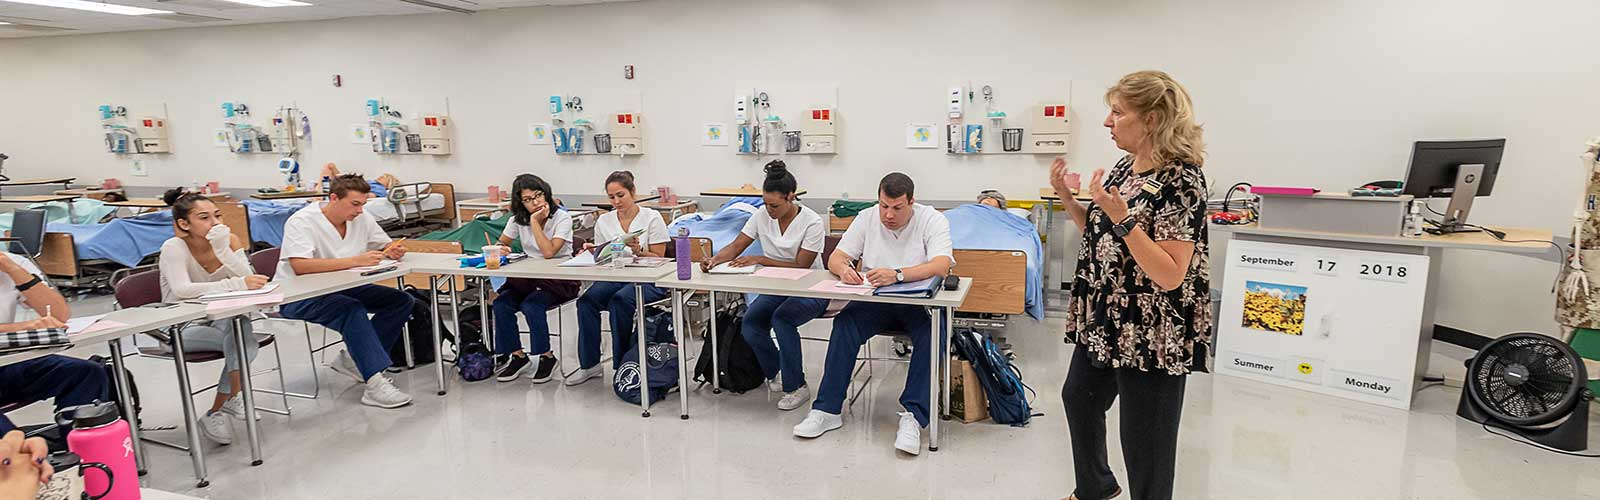 Students in nursing lab classroom